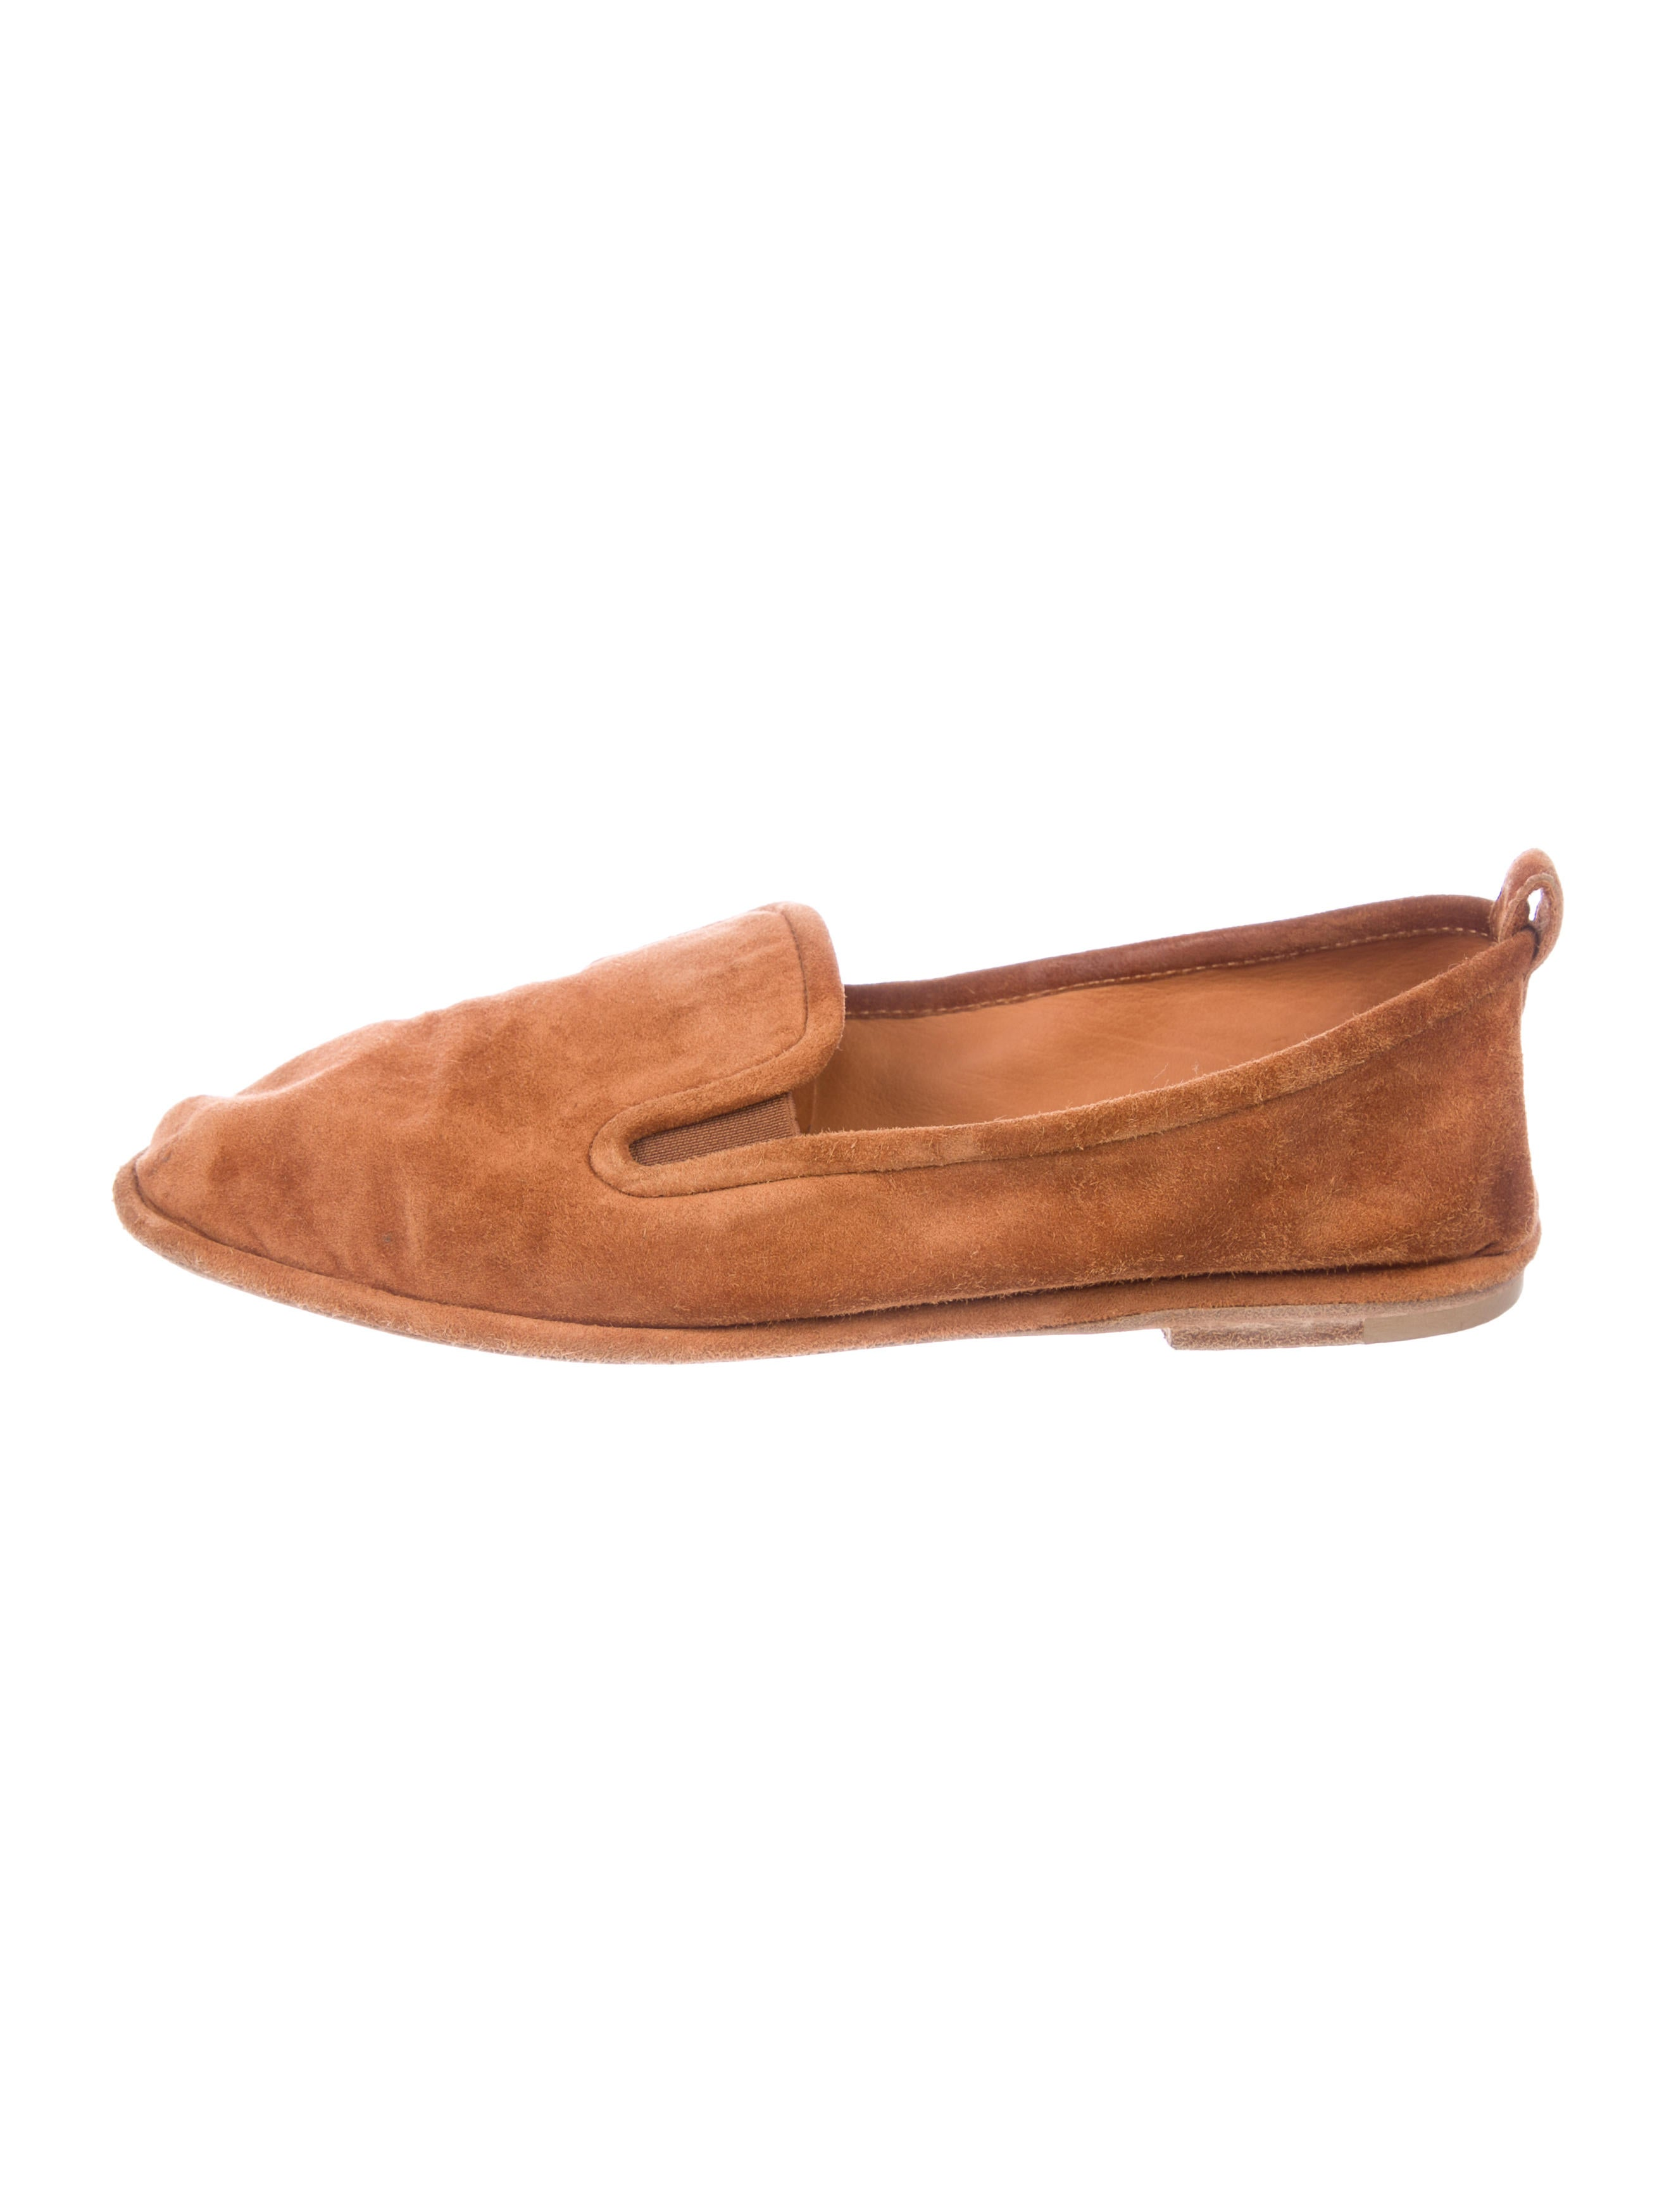 2015 sale online A.P.C. Suede Round-Toe Flats tumblr online shop for sale limited edition cheap online free shipping marketable f211h